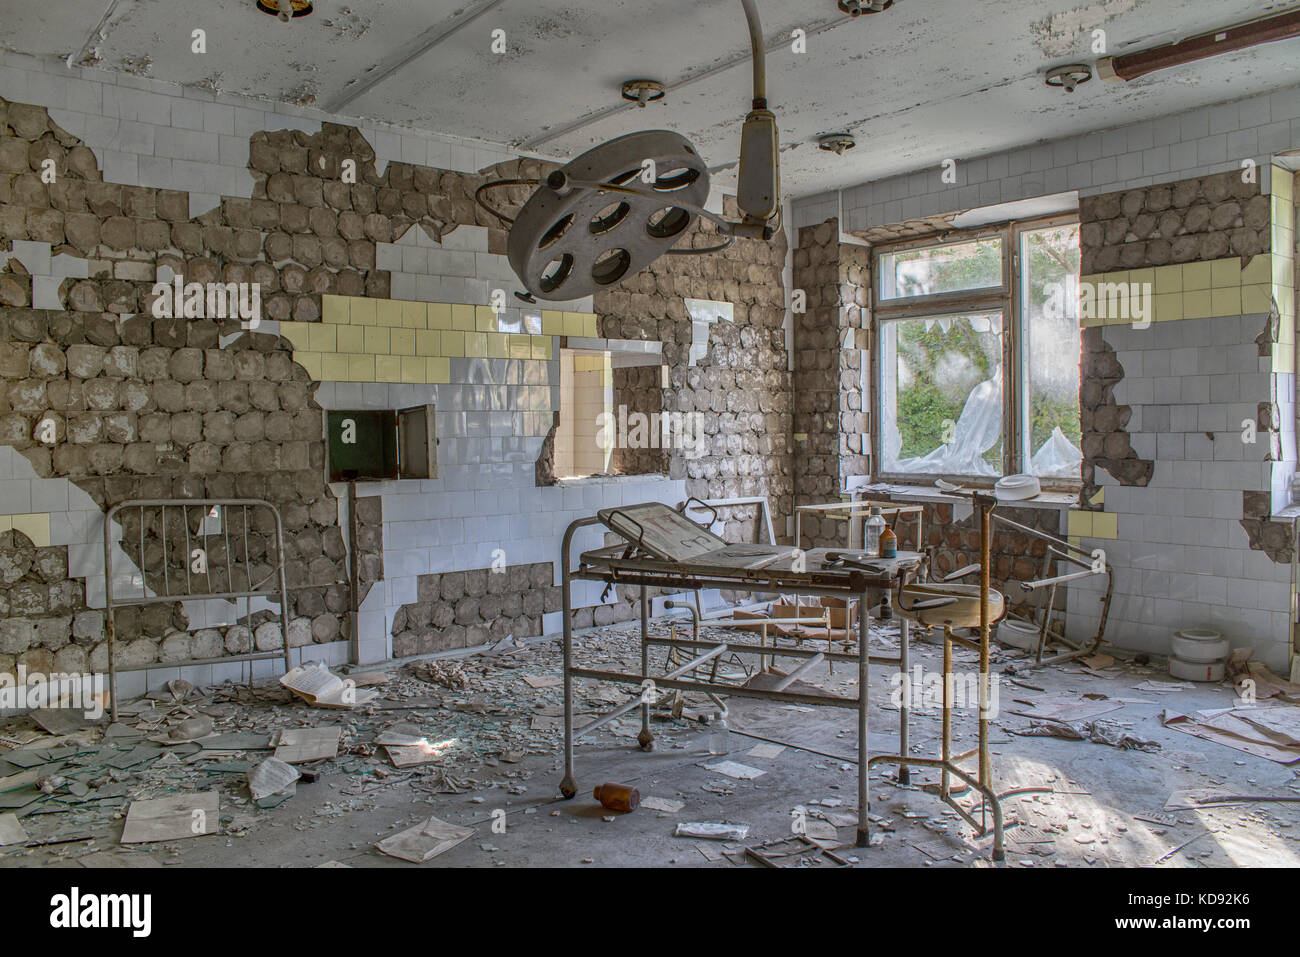 Operating room in No. 126 hospital in Pripyat ghost town, Chernobyl. - Stock Image